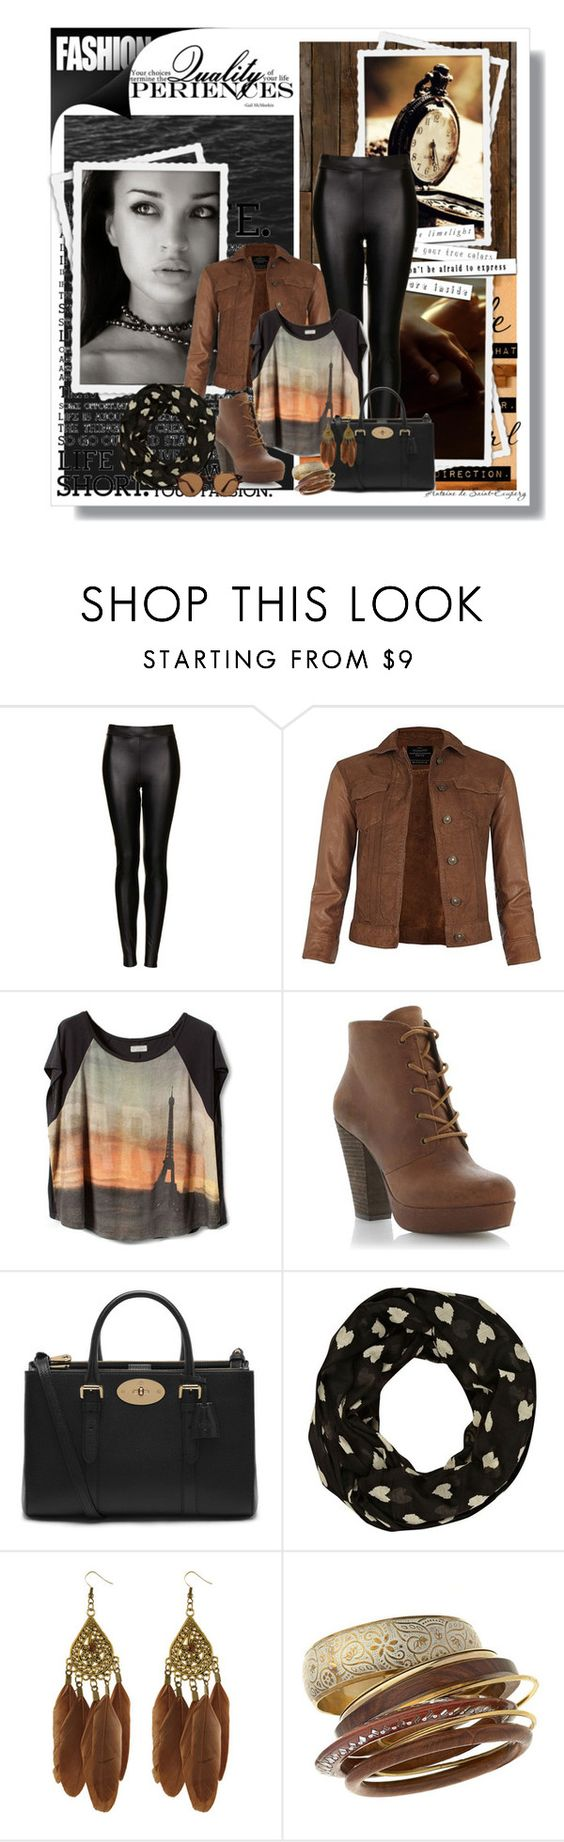 """""""This Is Confusion, Am I Confusing You?"""" by miriell ❤ liked on Polyvore featuring NLXL, Topshop, AllSaints, Steve Madden, Mulberry, River Island, Miso, Miss Selfridge and Ray-Ban"""